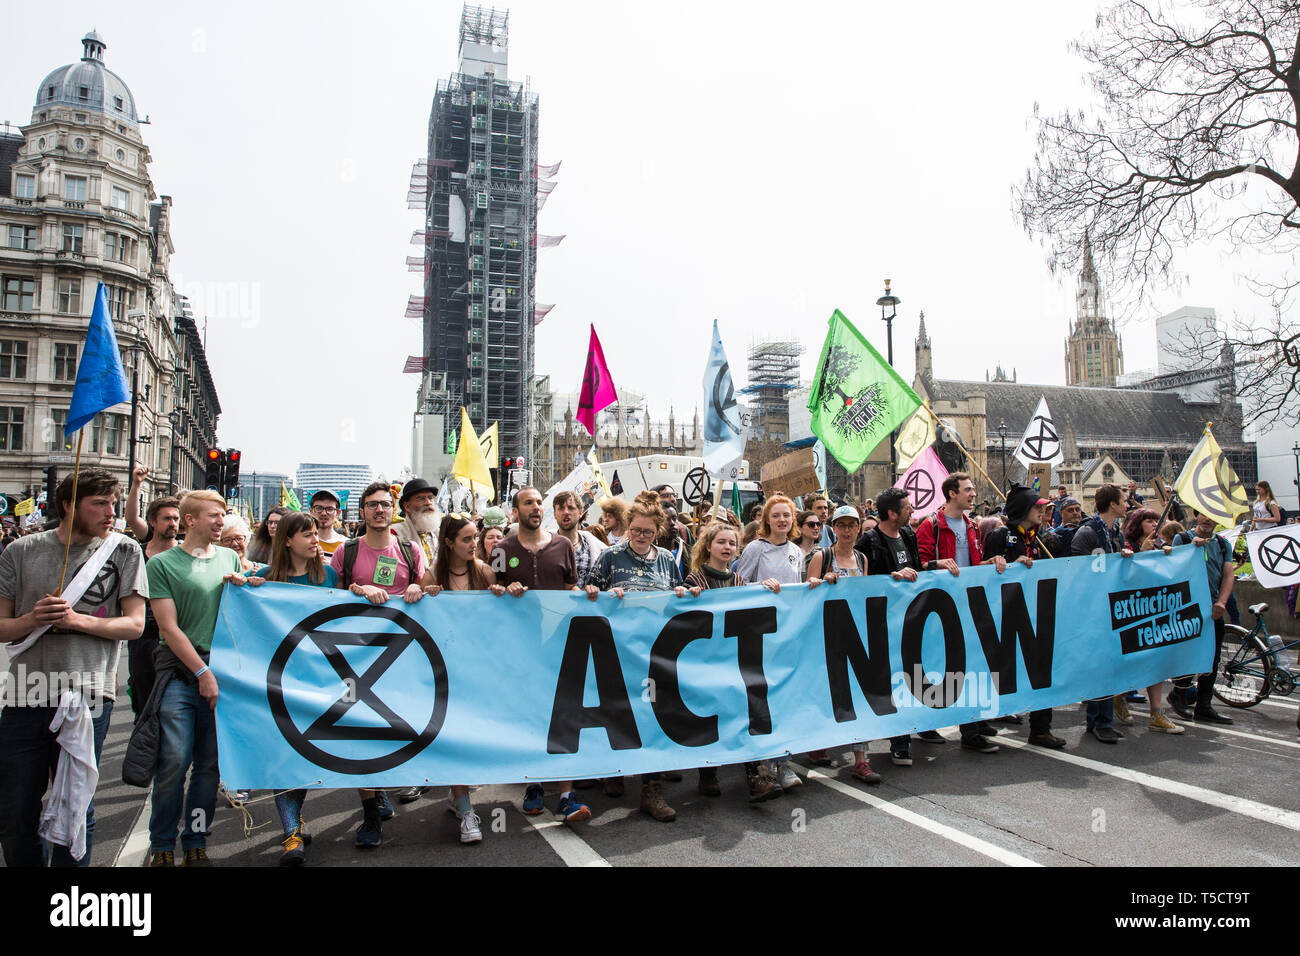 London, UK. 23rd April 2019. Climate change activists from Extinction Rebellion march from Marble Arch to Parliament Square to hold an assembly outside Parliament and to arrange for the delivery of letters from the activists requesting meetings with their Members of Parliament. Credit: Mark Kerrison/Alamy Live News - Stock Image